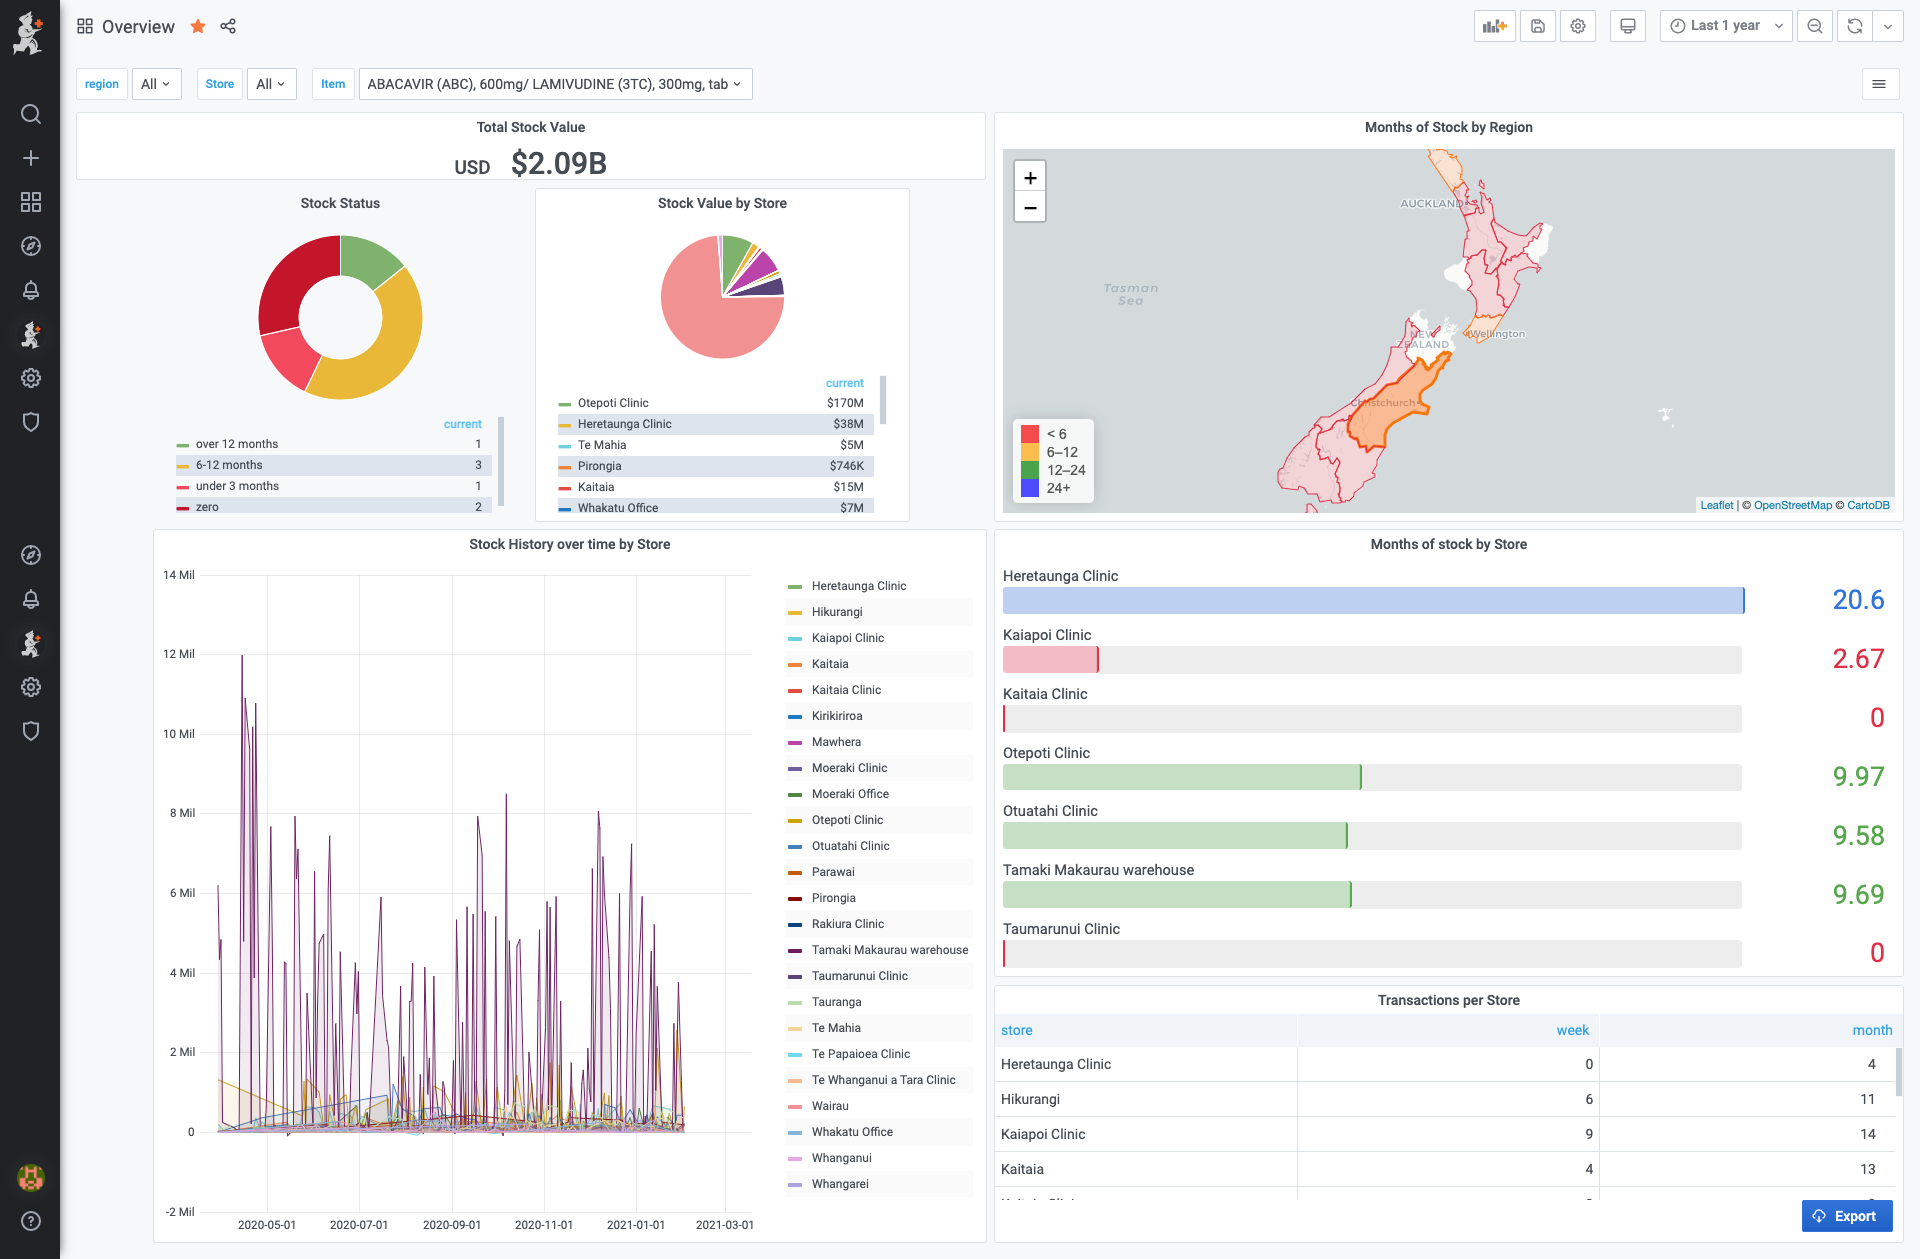 dashboard-overview.png